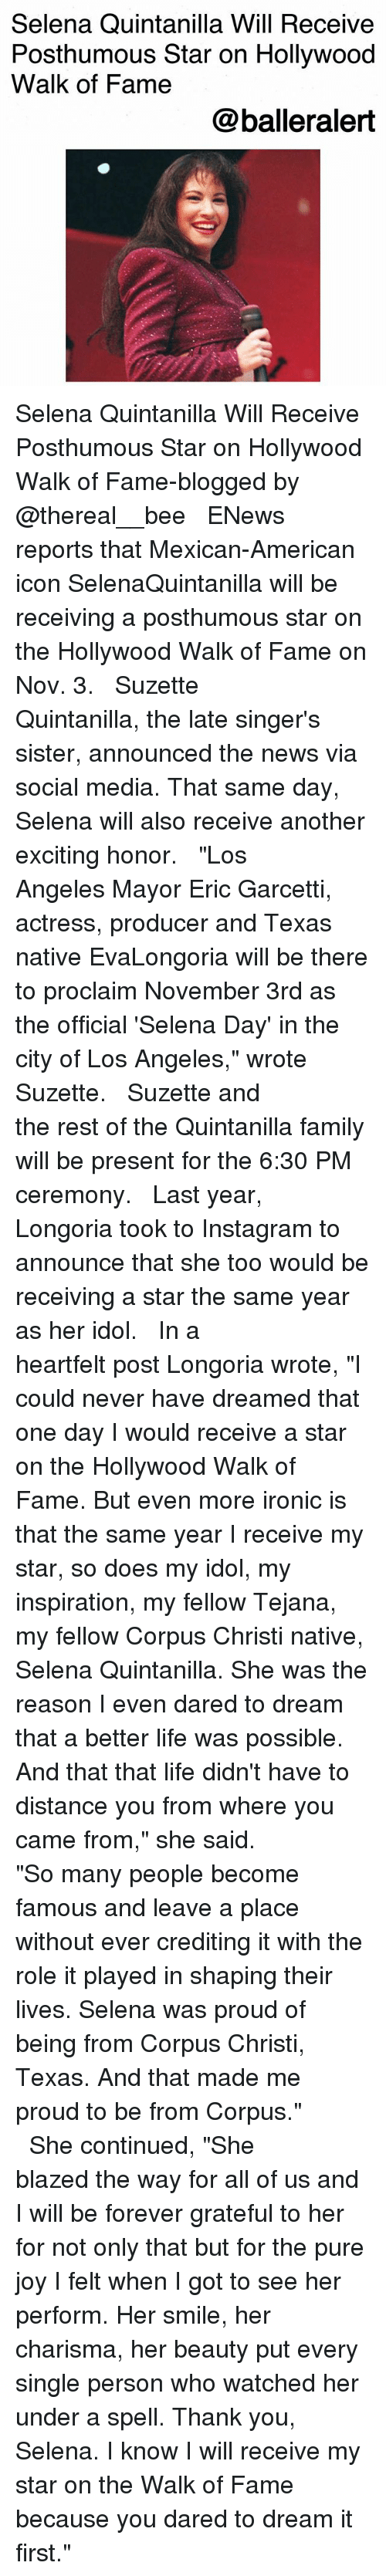 """Family, Instagram, and Ironic: Selena Quintanilla Will Receive  Posthumous Star on Hollywood  Walk of Fame  @balleralert Selena Quintanilla Will Receive Posthumous Star on Hollywood Walk of Fame-blogged by @thereal__bee ⠀⠀⠀⠀⠀⠀⠀⠀⠀ ⠀⠀ ENews reports that Mexican-American icon SelenaQuintanilla will be receiving a posthumous star on the Hollywood Walk of Fame on Nov. 3. ⠀⠀⠀⠀⠀⠀⠀⠀⠀ ⠀⠀ Suzette Quintanilla, the late singer's sister, announced the news via social media. That same day, Selena will also receive another exciting honor. ⠀⠀⠀⠀⠀⠀⠀⠀⠀ ⠀⠀ """"Los Angeles Mayor Eric Garcetti, actress, producer and Texas native EvaLongoria will be there to proclaim November 3rd as the official 'Selena Day' in the city of Los Angeles,"""" wrote Suzette. ⠀⠀⠀⠀⠀⠀⠀⠀⠀ ⠀⠀ Suzette and the rest of the Quintanilla family will be present for the 6:30 PM ceremony. ⠀⠀⠀⠀⠀⠀⠀⠀⠀ ⠀⠀ Last year, Longoria took to Instagram to announce that she too would be receiving a star the same year as her idol. ⠀⠀⠀⠀⠀⠀⠀⠀⠀ ⠀⠀ In a heartfelt post Longoria wrote, """"I could never have dreamed that one day I would receive a star on the Hollywood Walk of Fame. But even more ironic is that the same year I receive my star, so does my idol, my inspiration, my fellow Tejana, my fellow Corpus Christi native, Selena Quintanilla. She was the reason I even dared to dream that a better life was possible. And that that life didn't have to distance you from where you came from,"""" she said. ⠀⠀⠀⠀⠀⠀⠀⠀⠀ ⠀⠀ """"So many people become famous and leave a place without ever crediting it with the role it played in shaping their lives. Selena was proud of being from Corpus Christi, Texas. And that made me proud to be from Corpus."""" ⠀⠀⠀⠀⠀⠀⠀⠀⠀ ⠀⠀ She continued, """"She blazed the way for all of us and I will be forever grateful to her for not only that but for the pure joy I felt when I got to see her perform. Her smile, her charisma, her beauty put every single person who watched her under a spell. Thank you, Selena. I know I will receive my star on the Walk of F"""